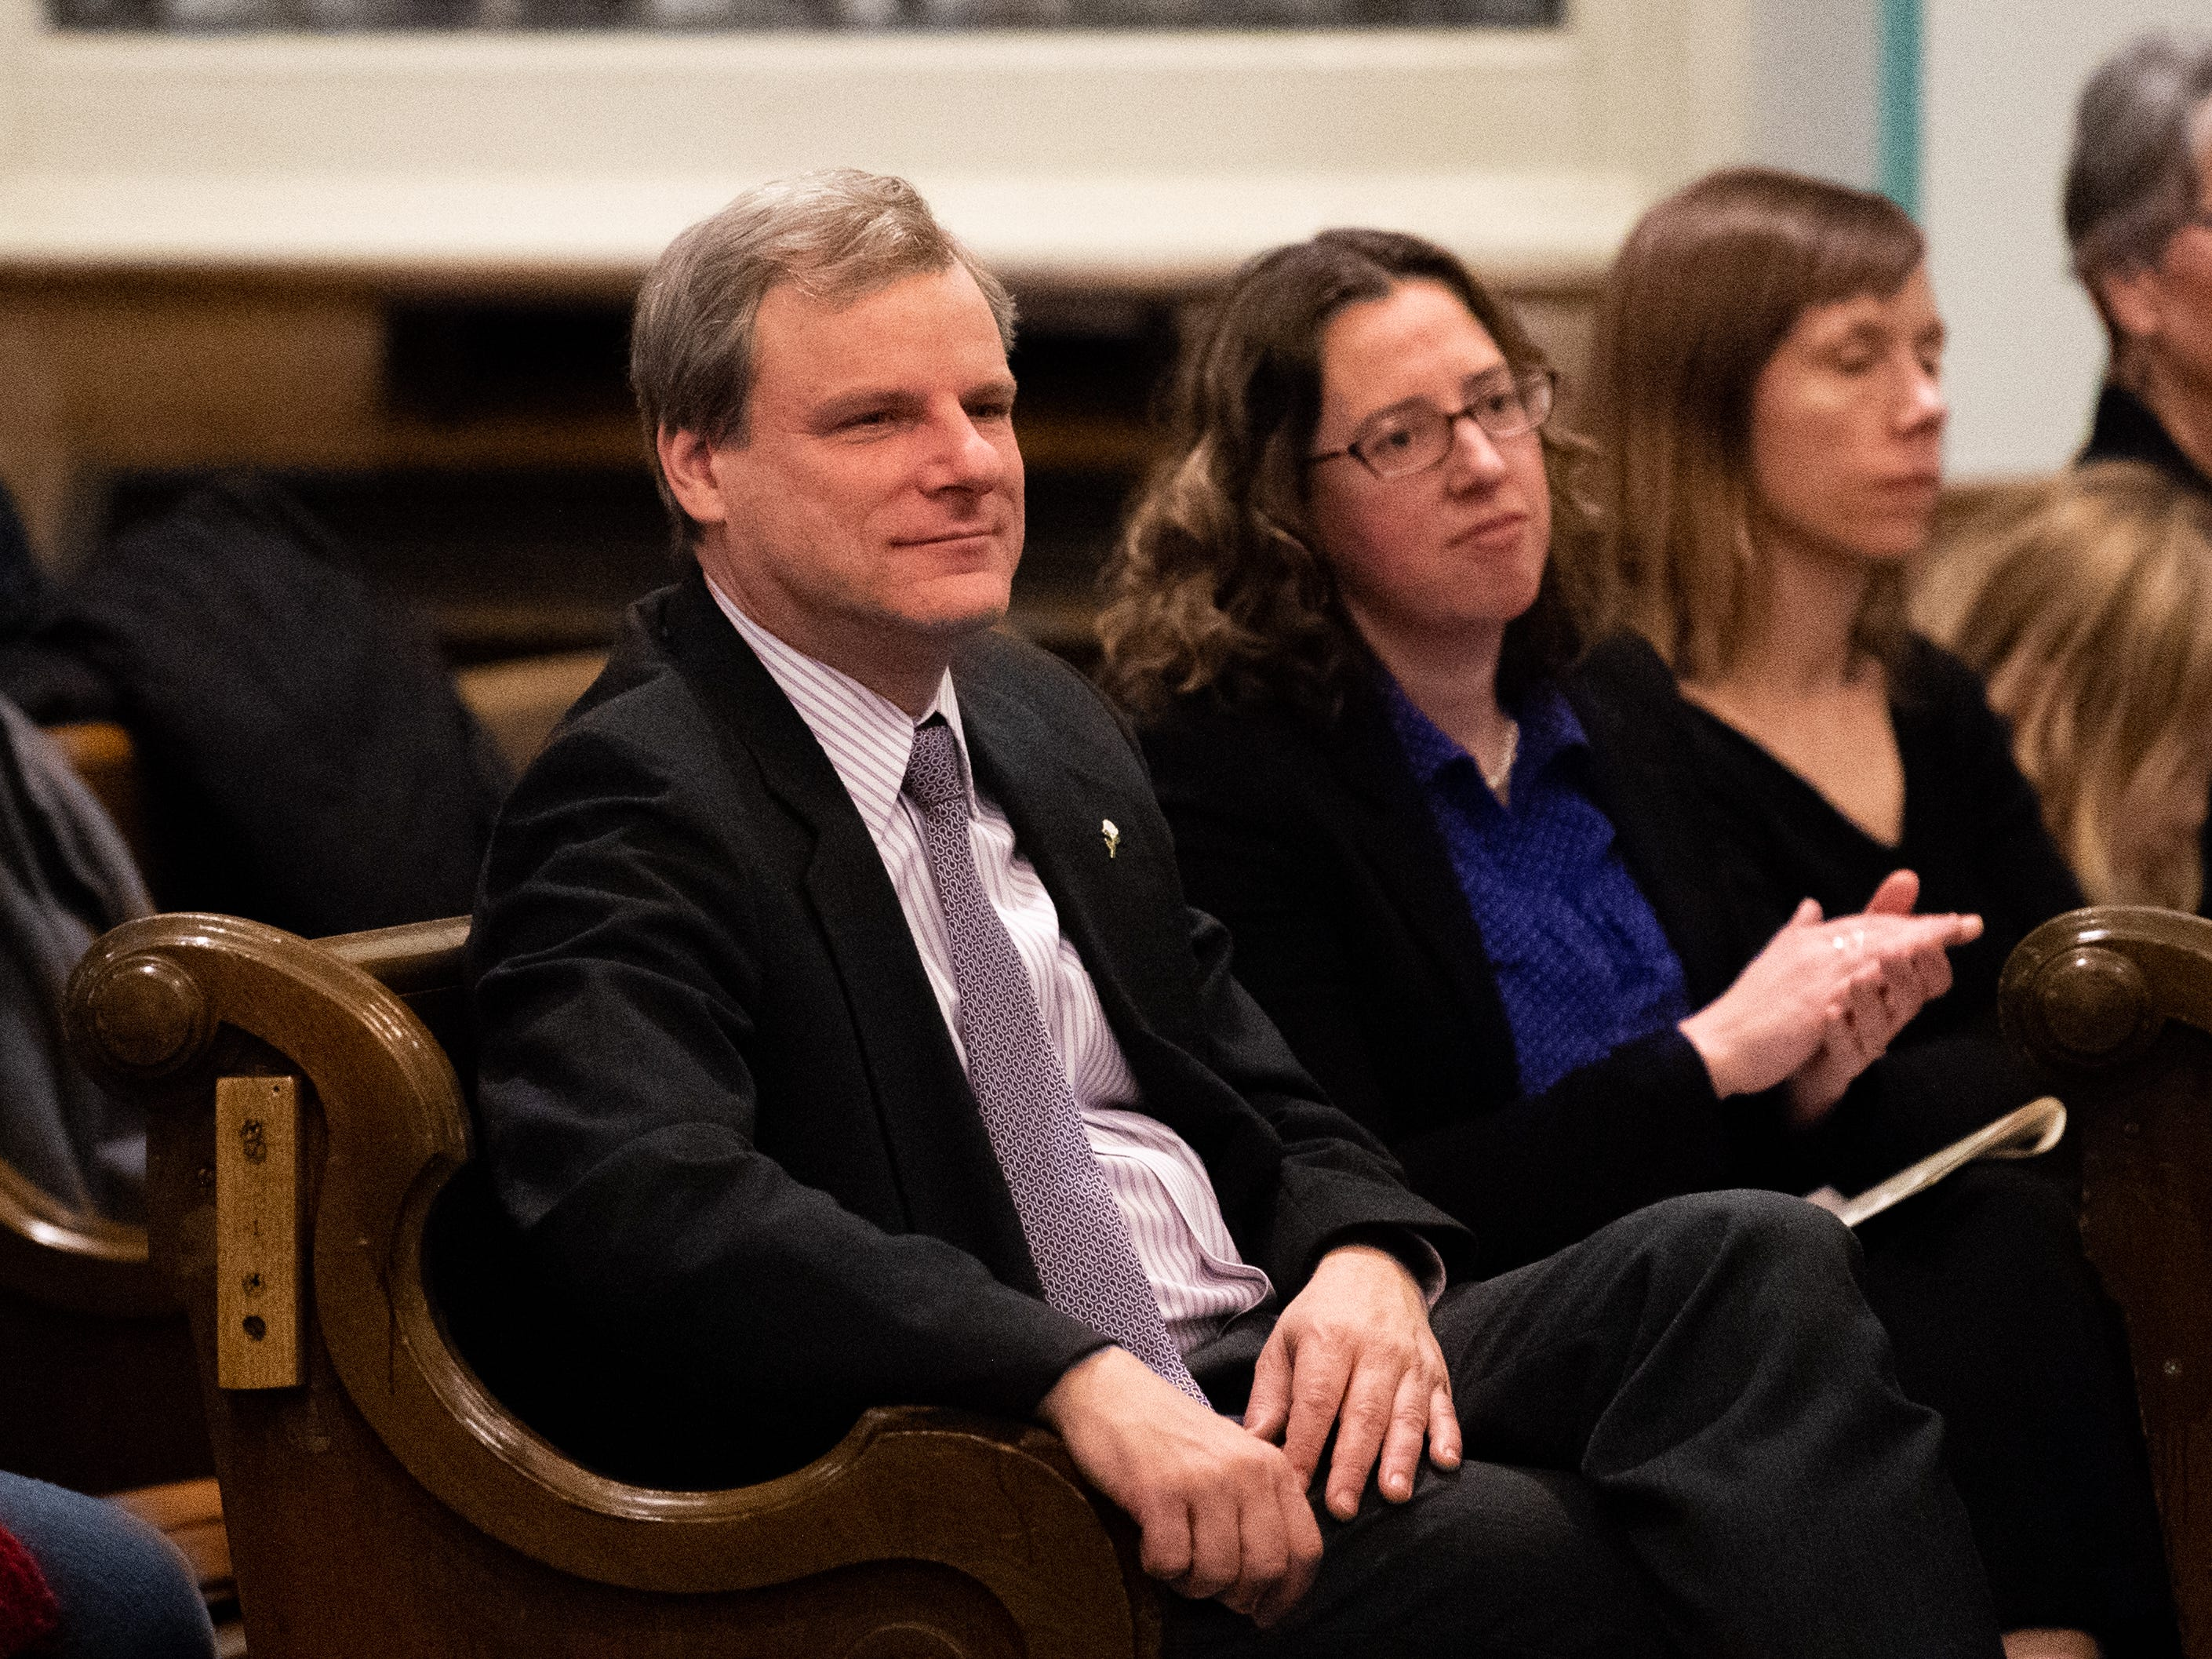 Mayor Michael Helfrich sits in the front row enjoying the band during the 21st annual Jazz Vespers concert at First Presbyterian Church in York, January 12, 2019.